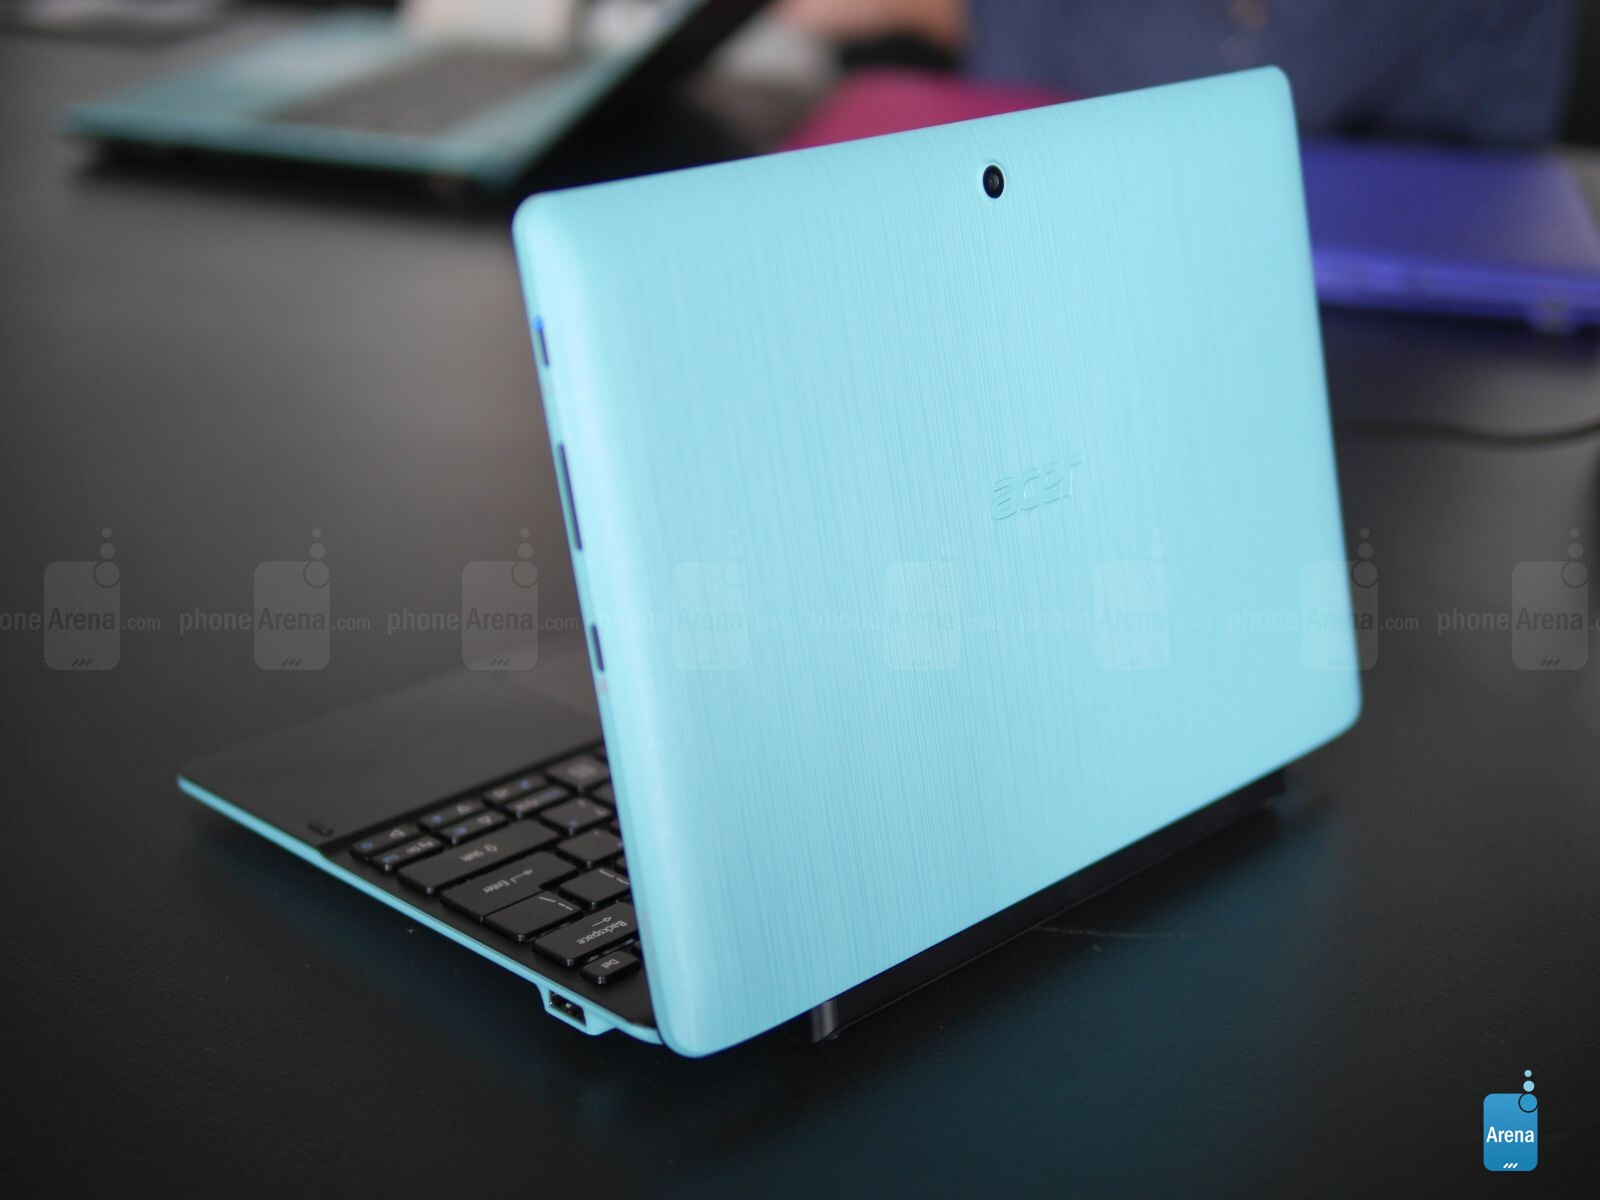 Acer Aspire Switch 10 E hands-on